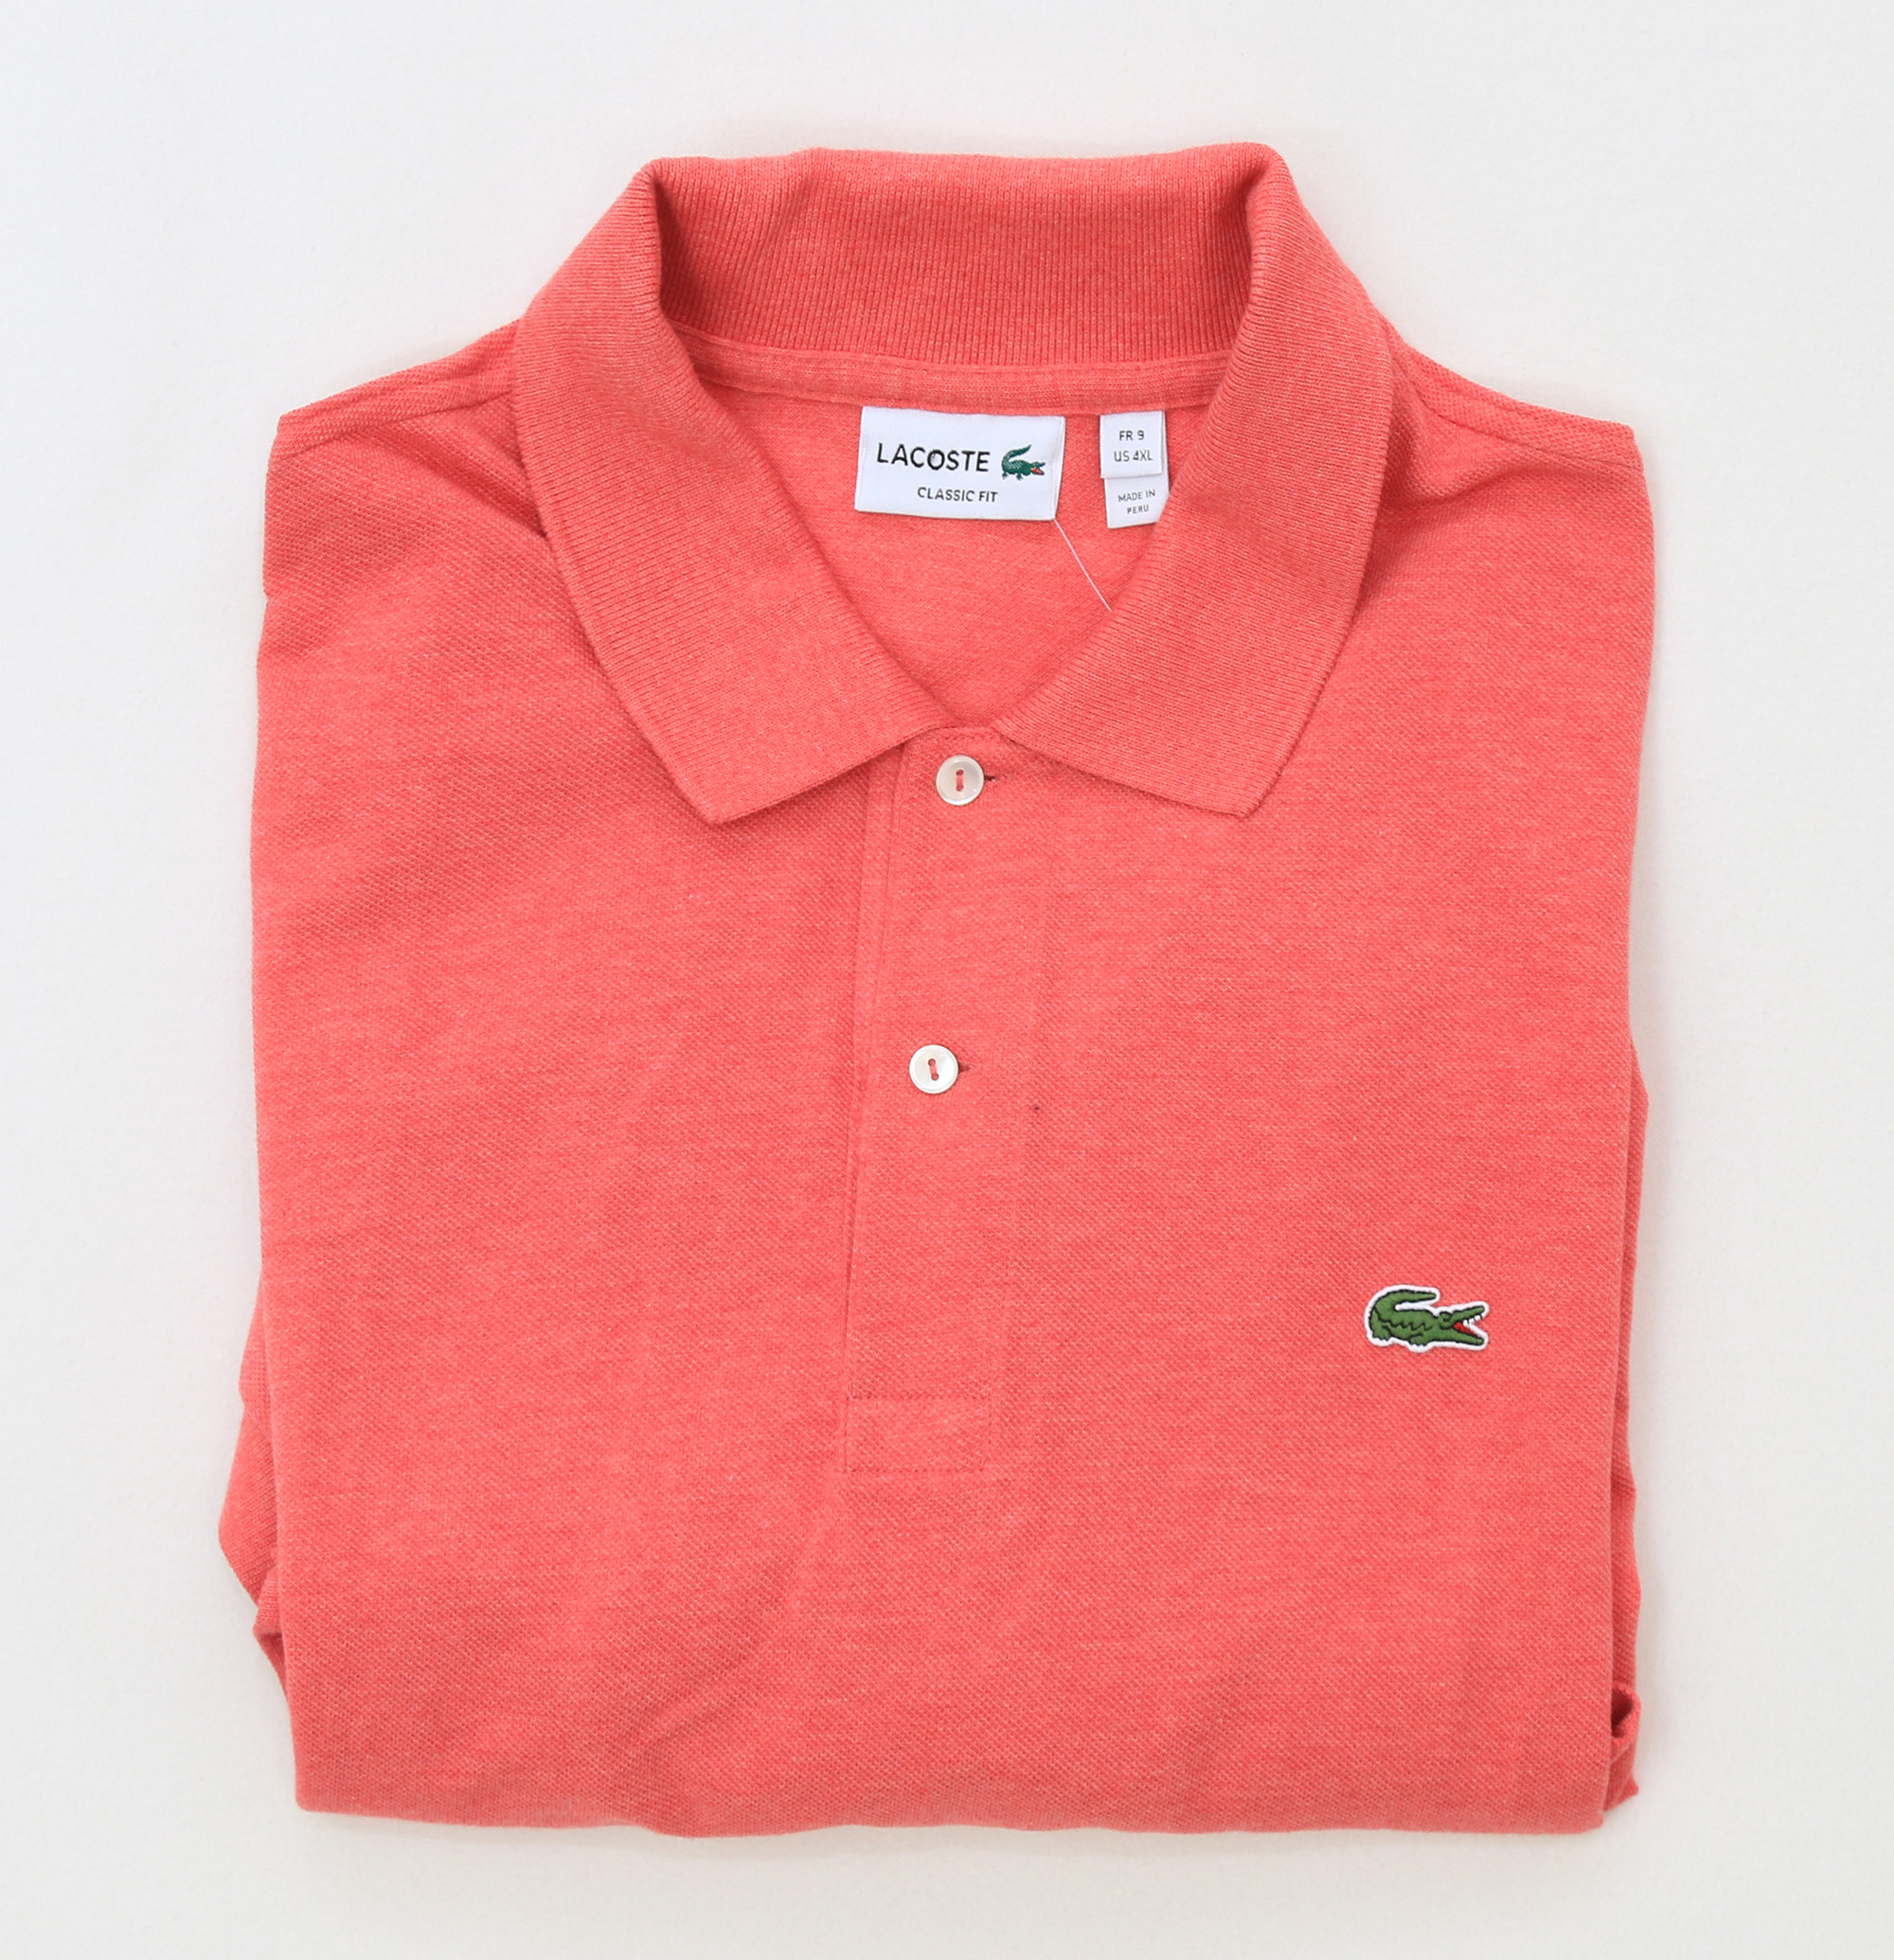 Lacoste men 39 s short sleeve classic fit mesh pique polo for Lacoste stripe pique polo shirt